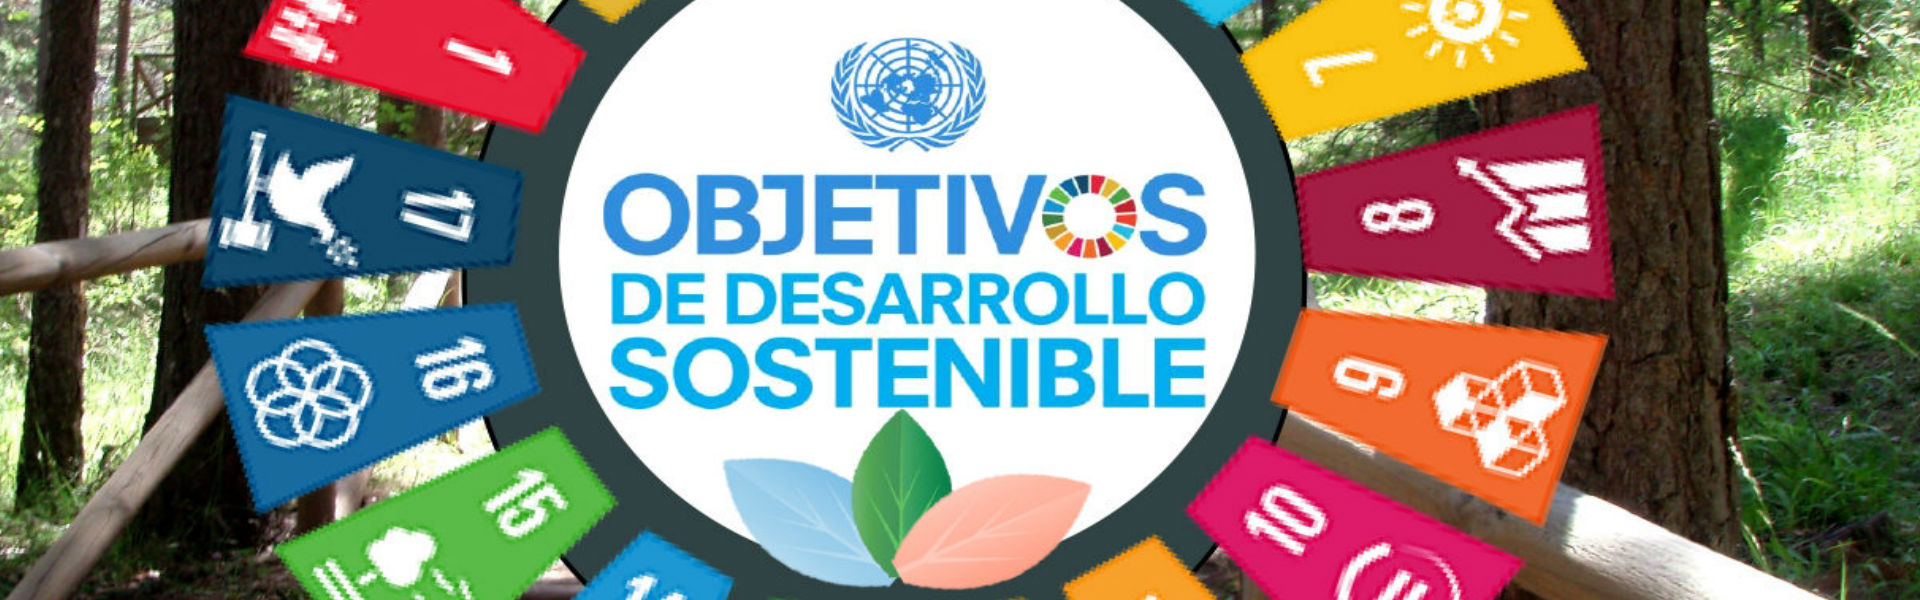 The University of Murcia joins the 2030 Agenda for Sustainable Development and its 17 Sustainable Development Goals- SDGs